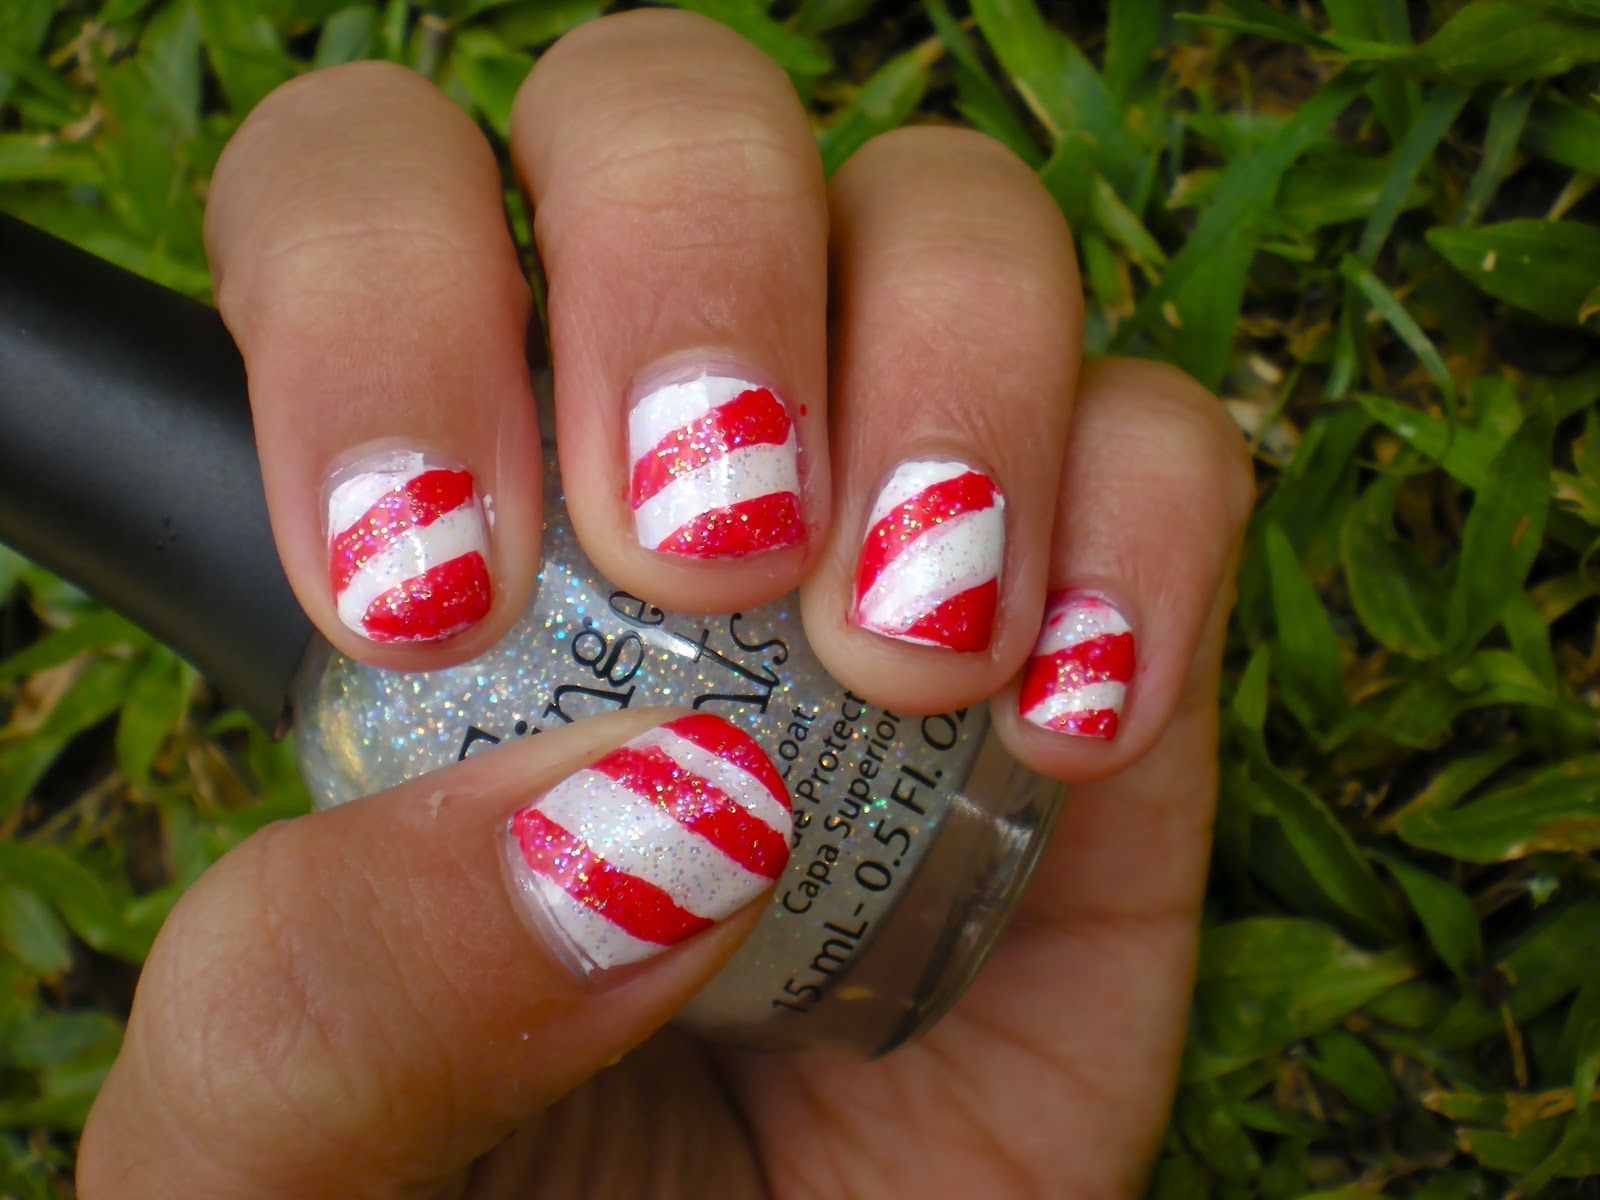 Posh for Polish: Candy Cane Nails